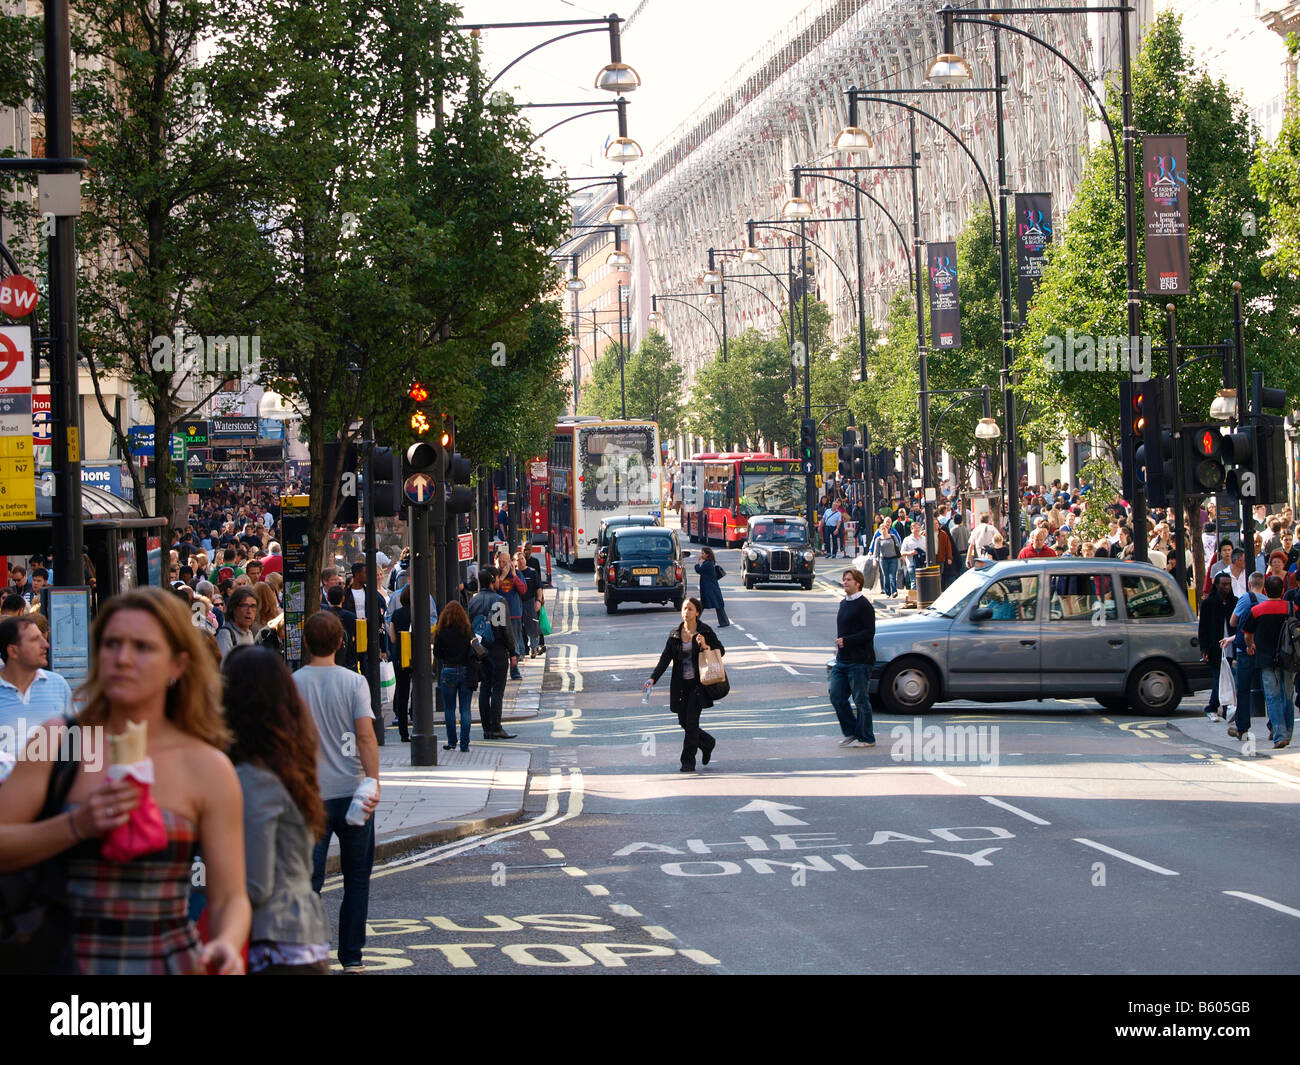 Oxford street shopping district with many people London UK - Stock Image